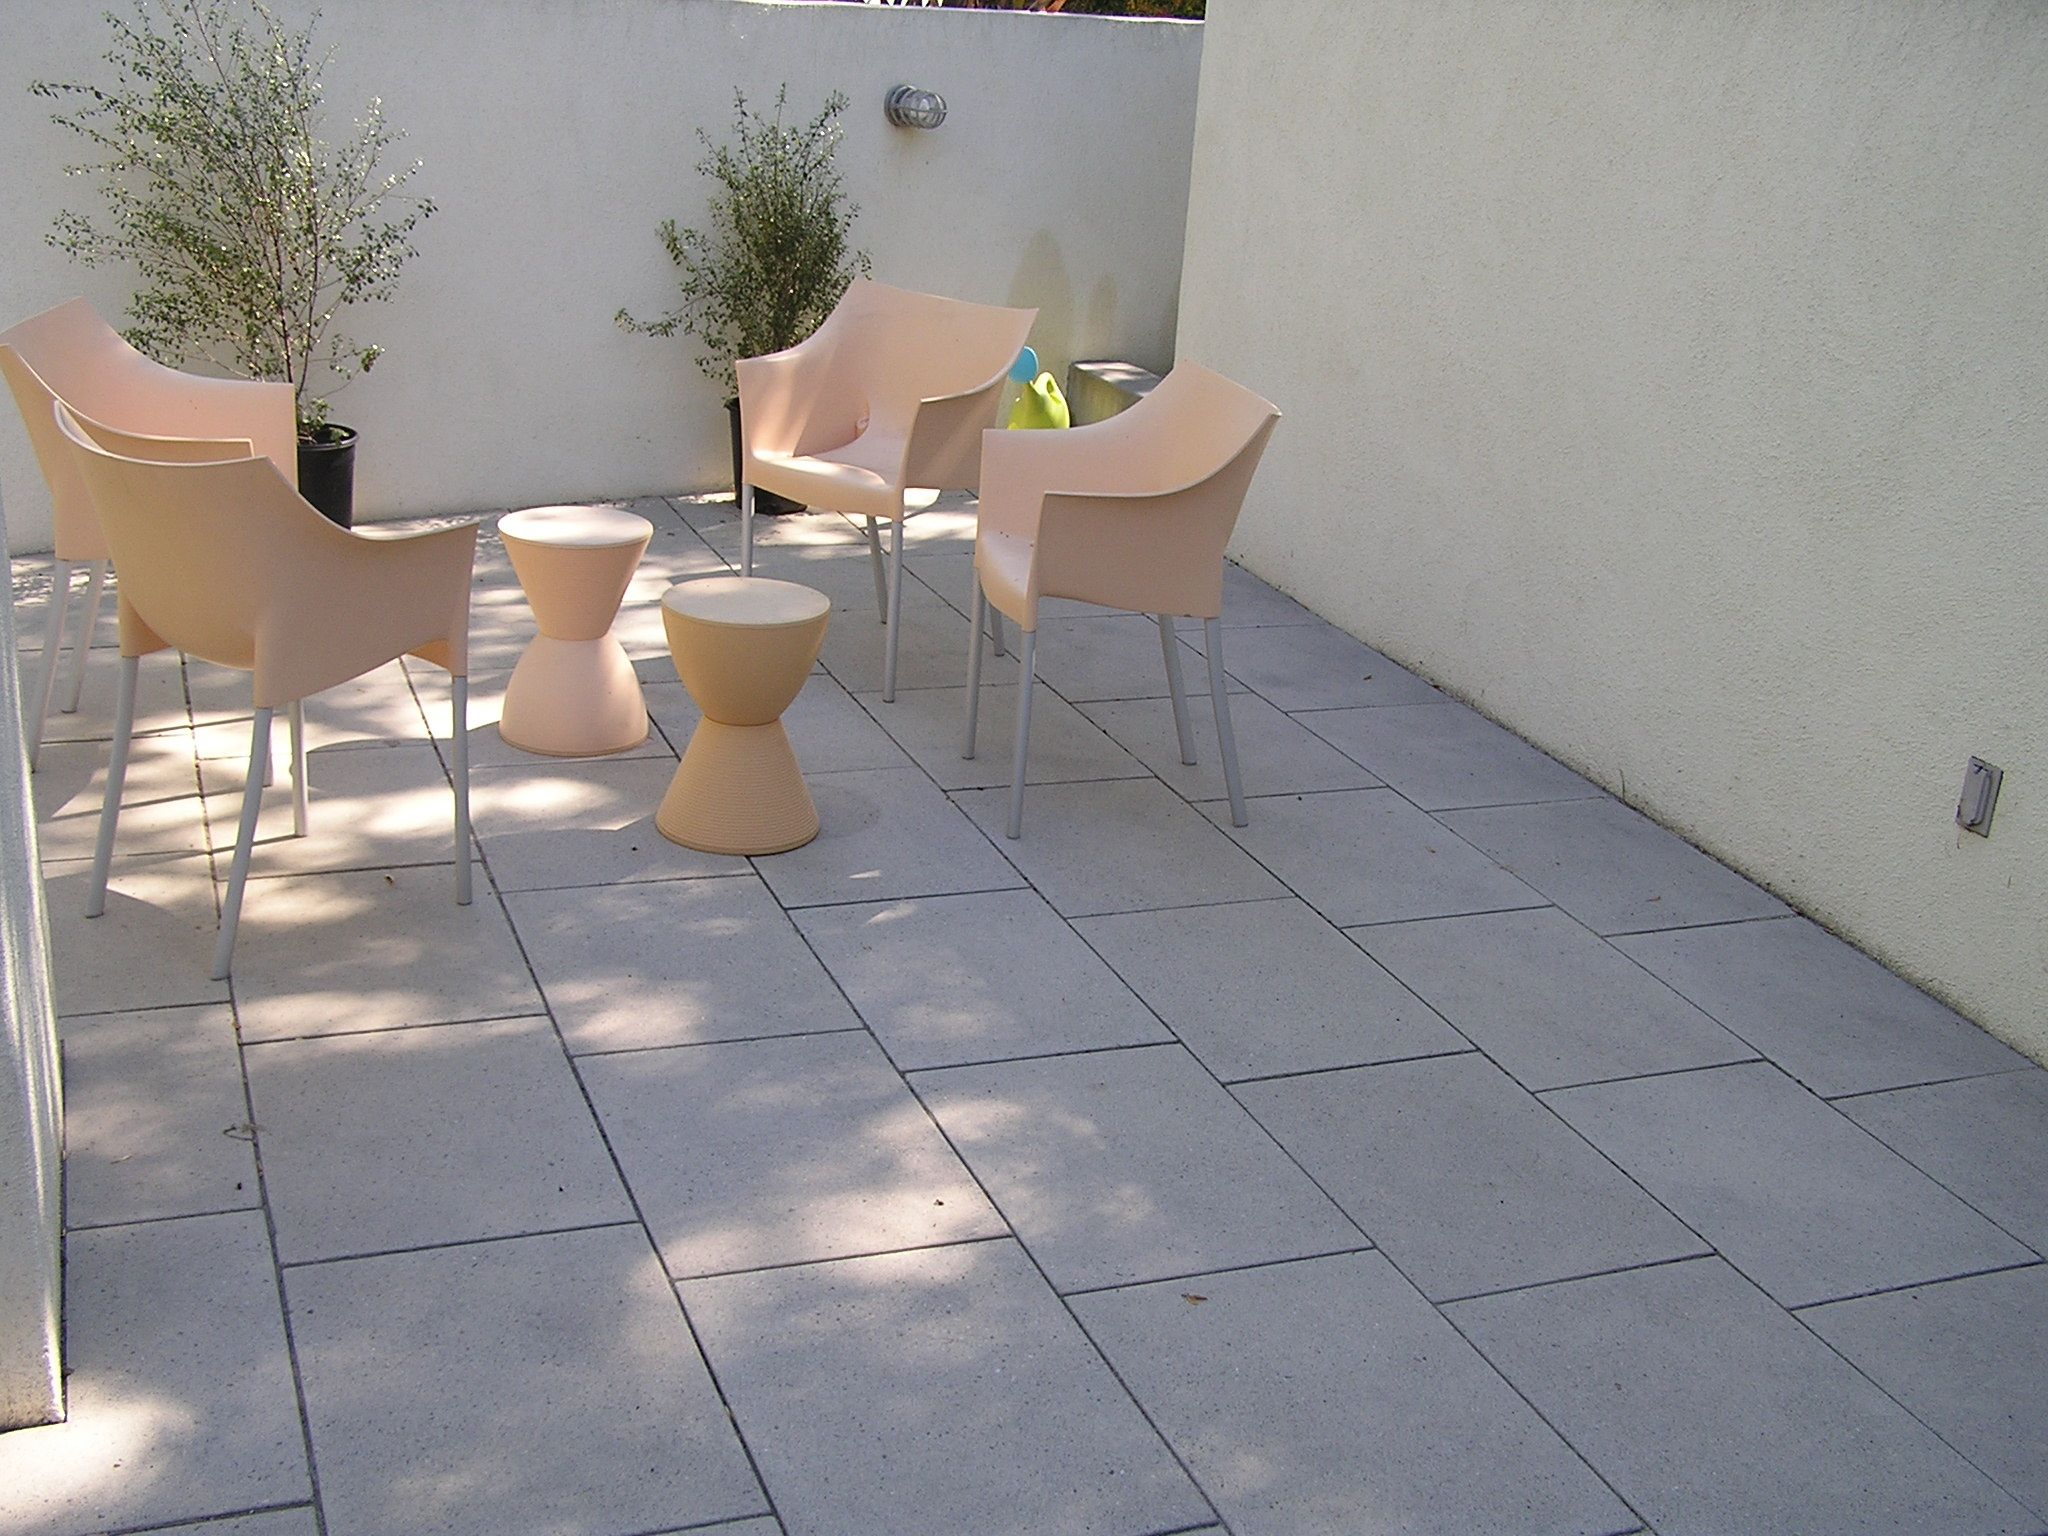 How To Make Simple Patio Ideas With Modern Furnishing ... on Simple Concrete Patio Designs id=66118